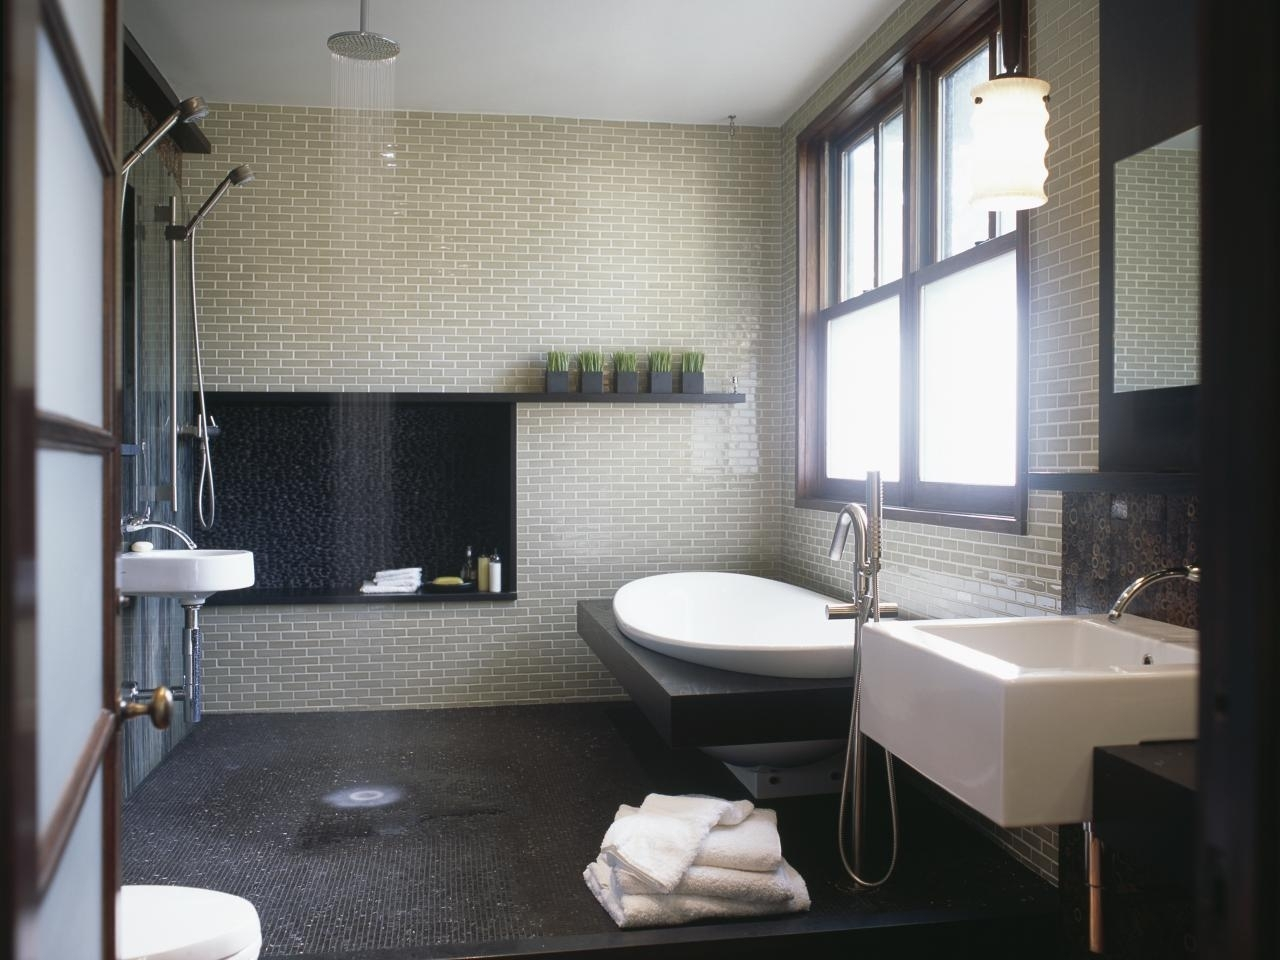 10 Awesome Bathroom Tubs And Showers Ideas %name 2020